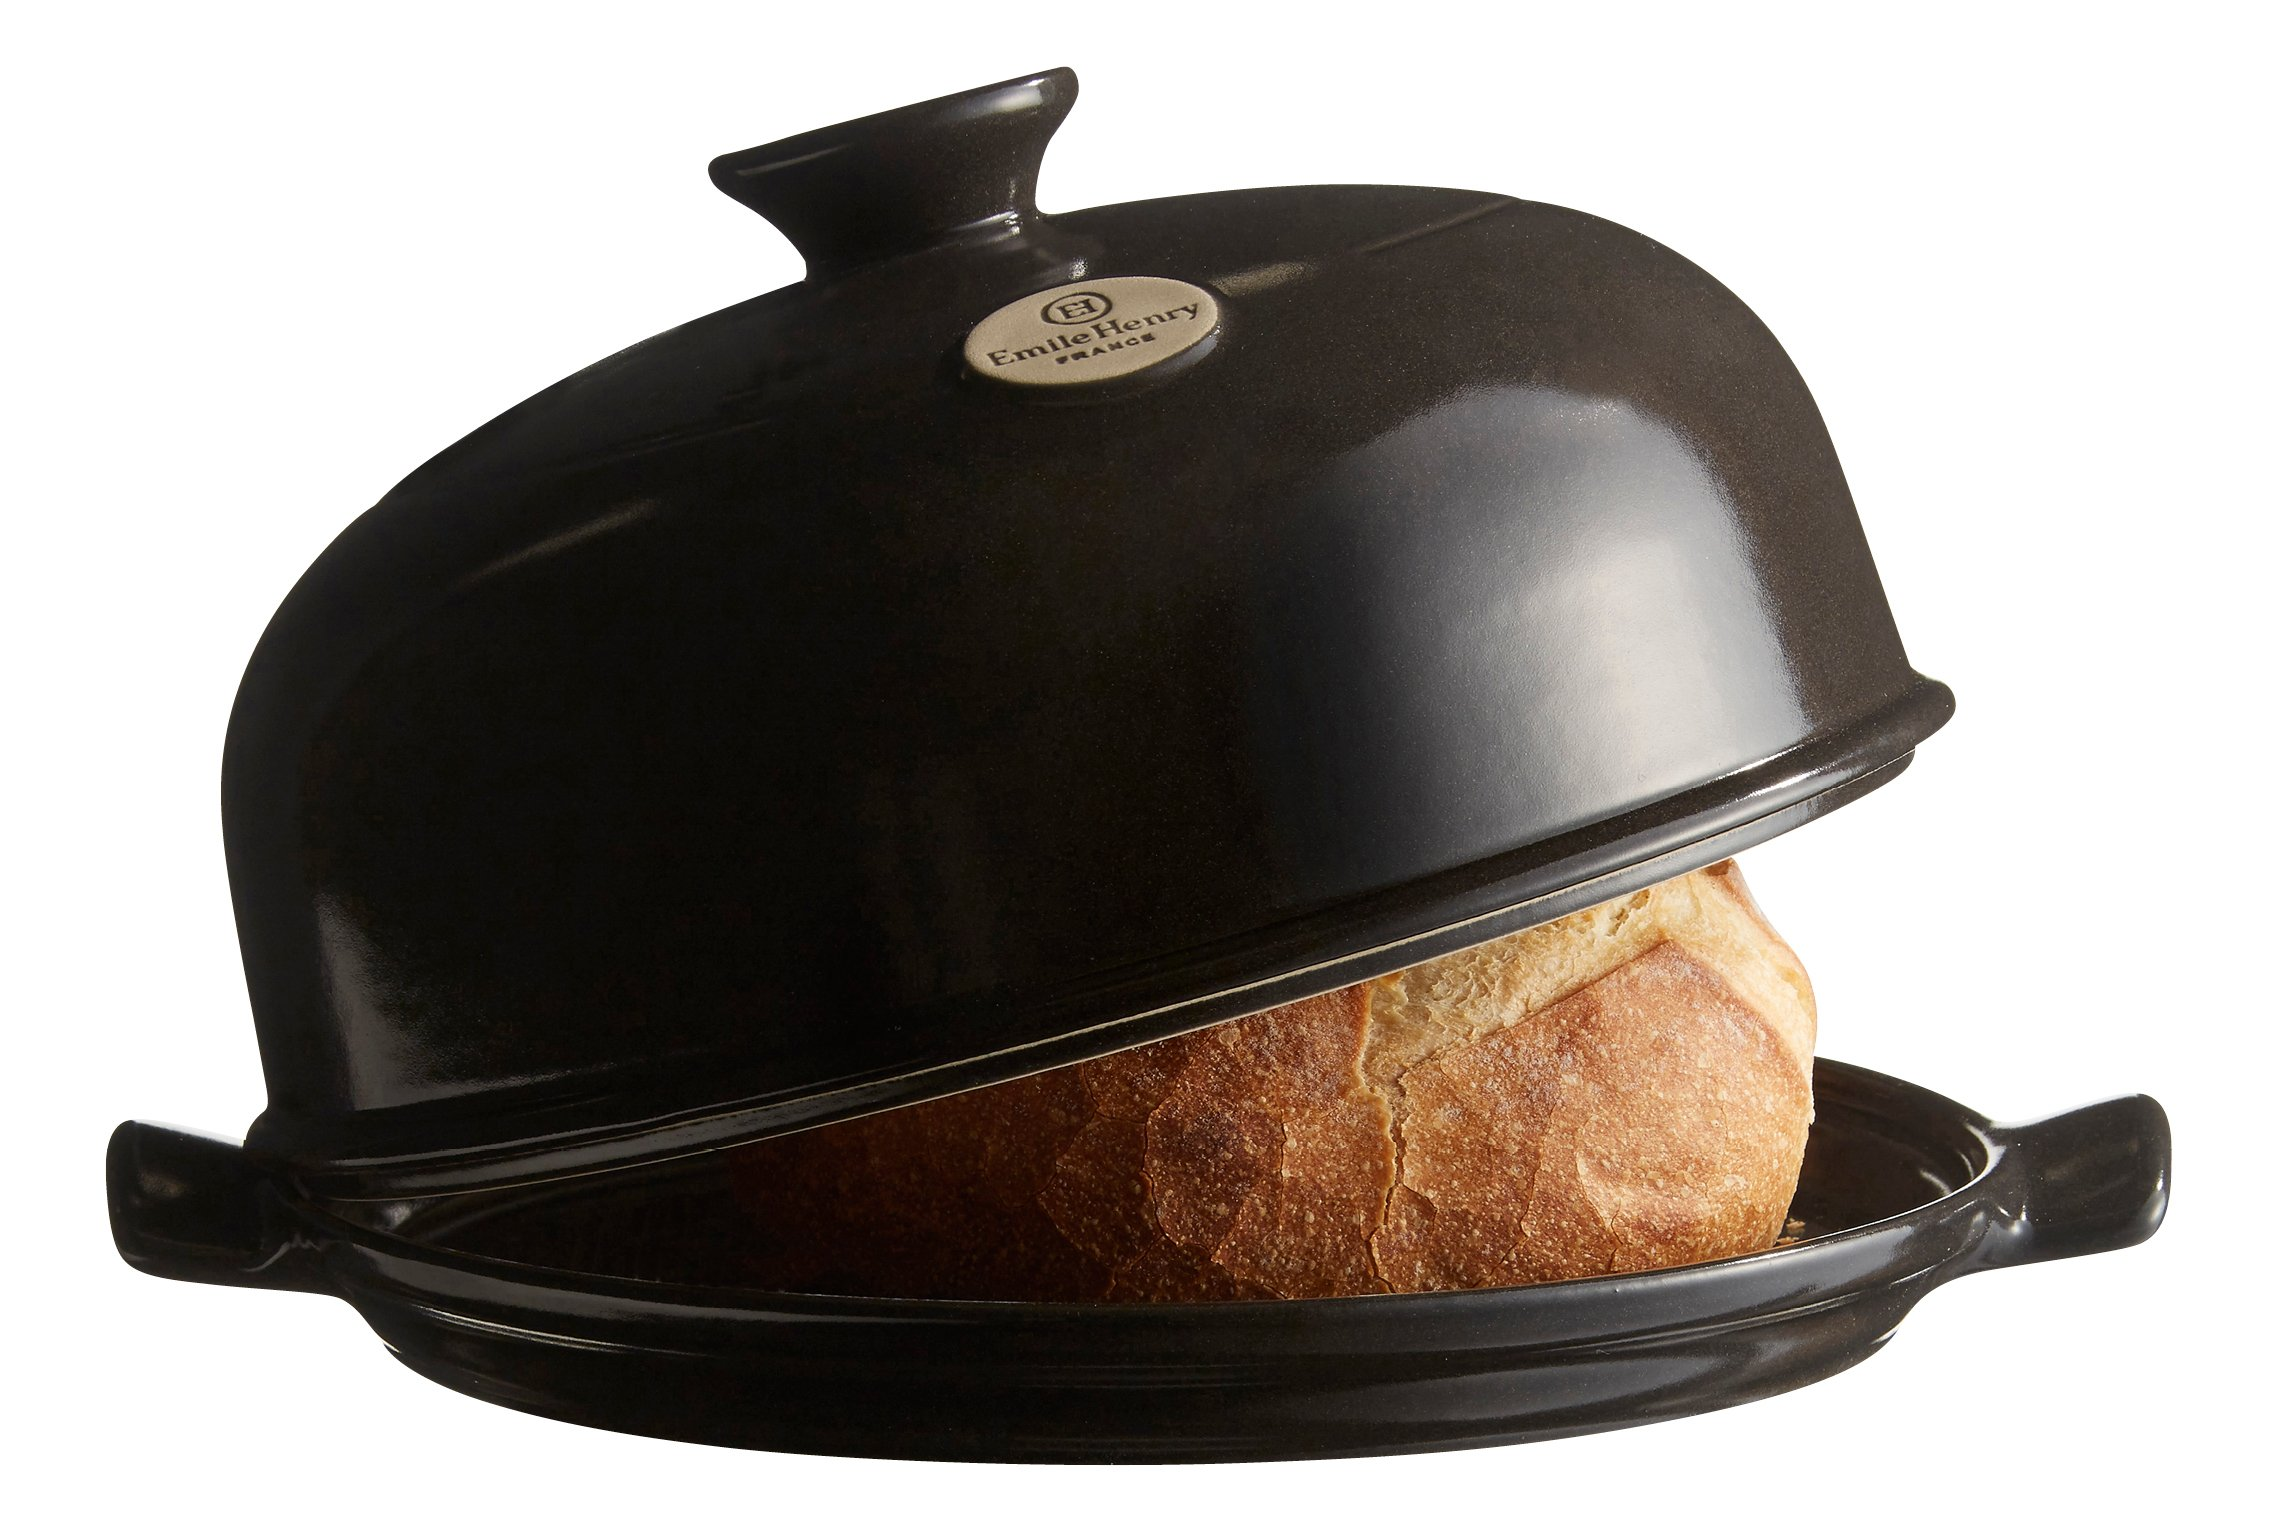 Emile Henry Made In France Flame Bread Cloche, 13.2 x 11.2'', Charcoal by Emile Henry